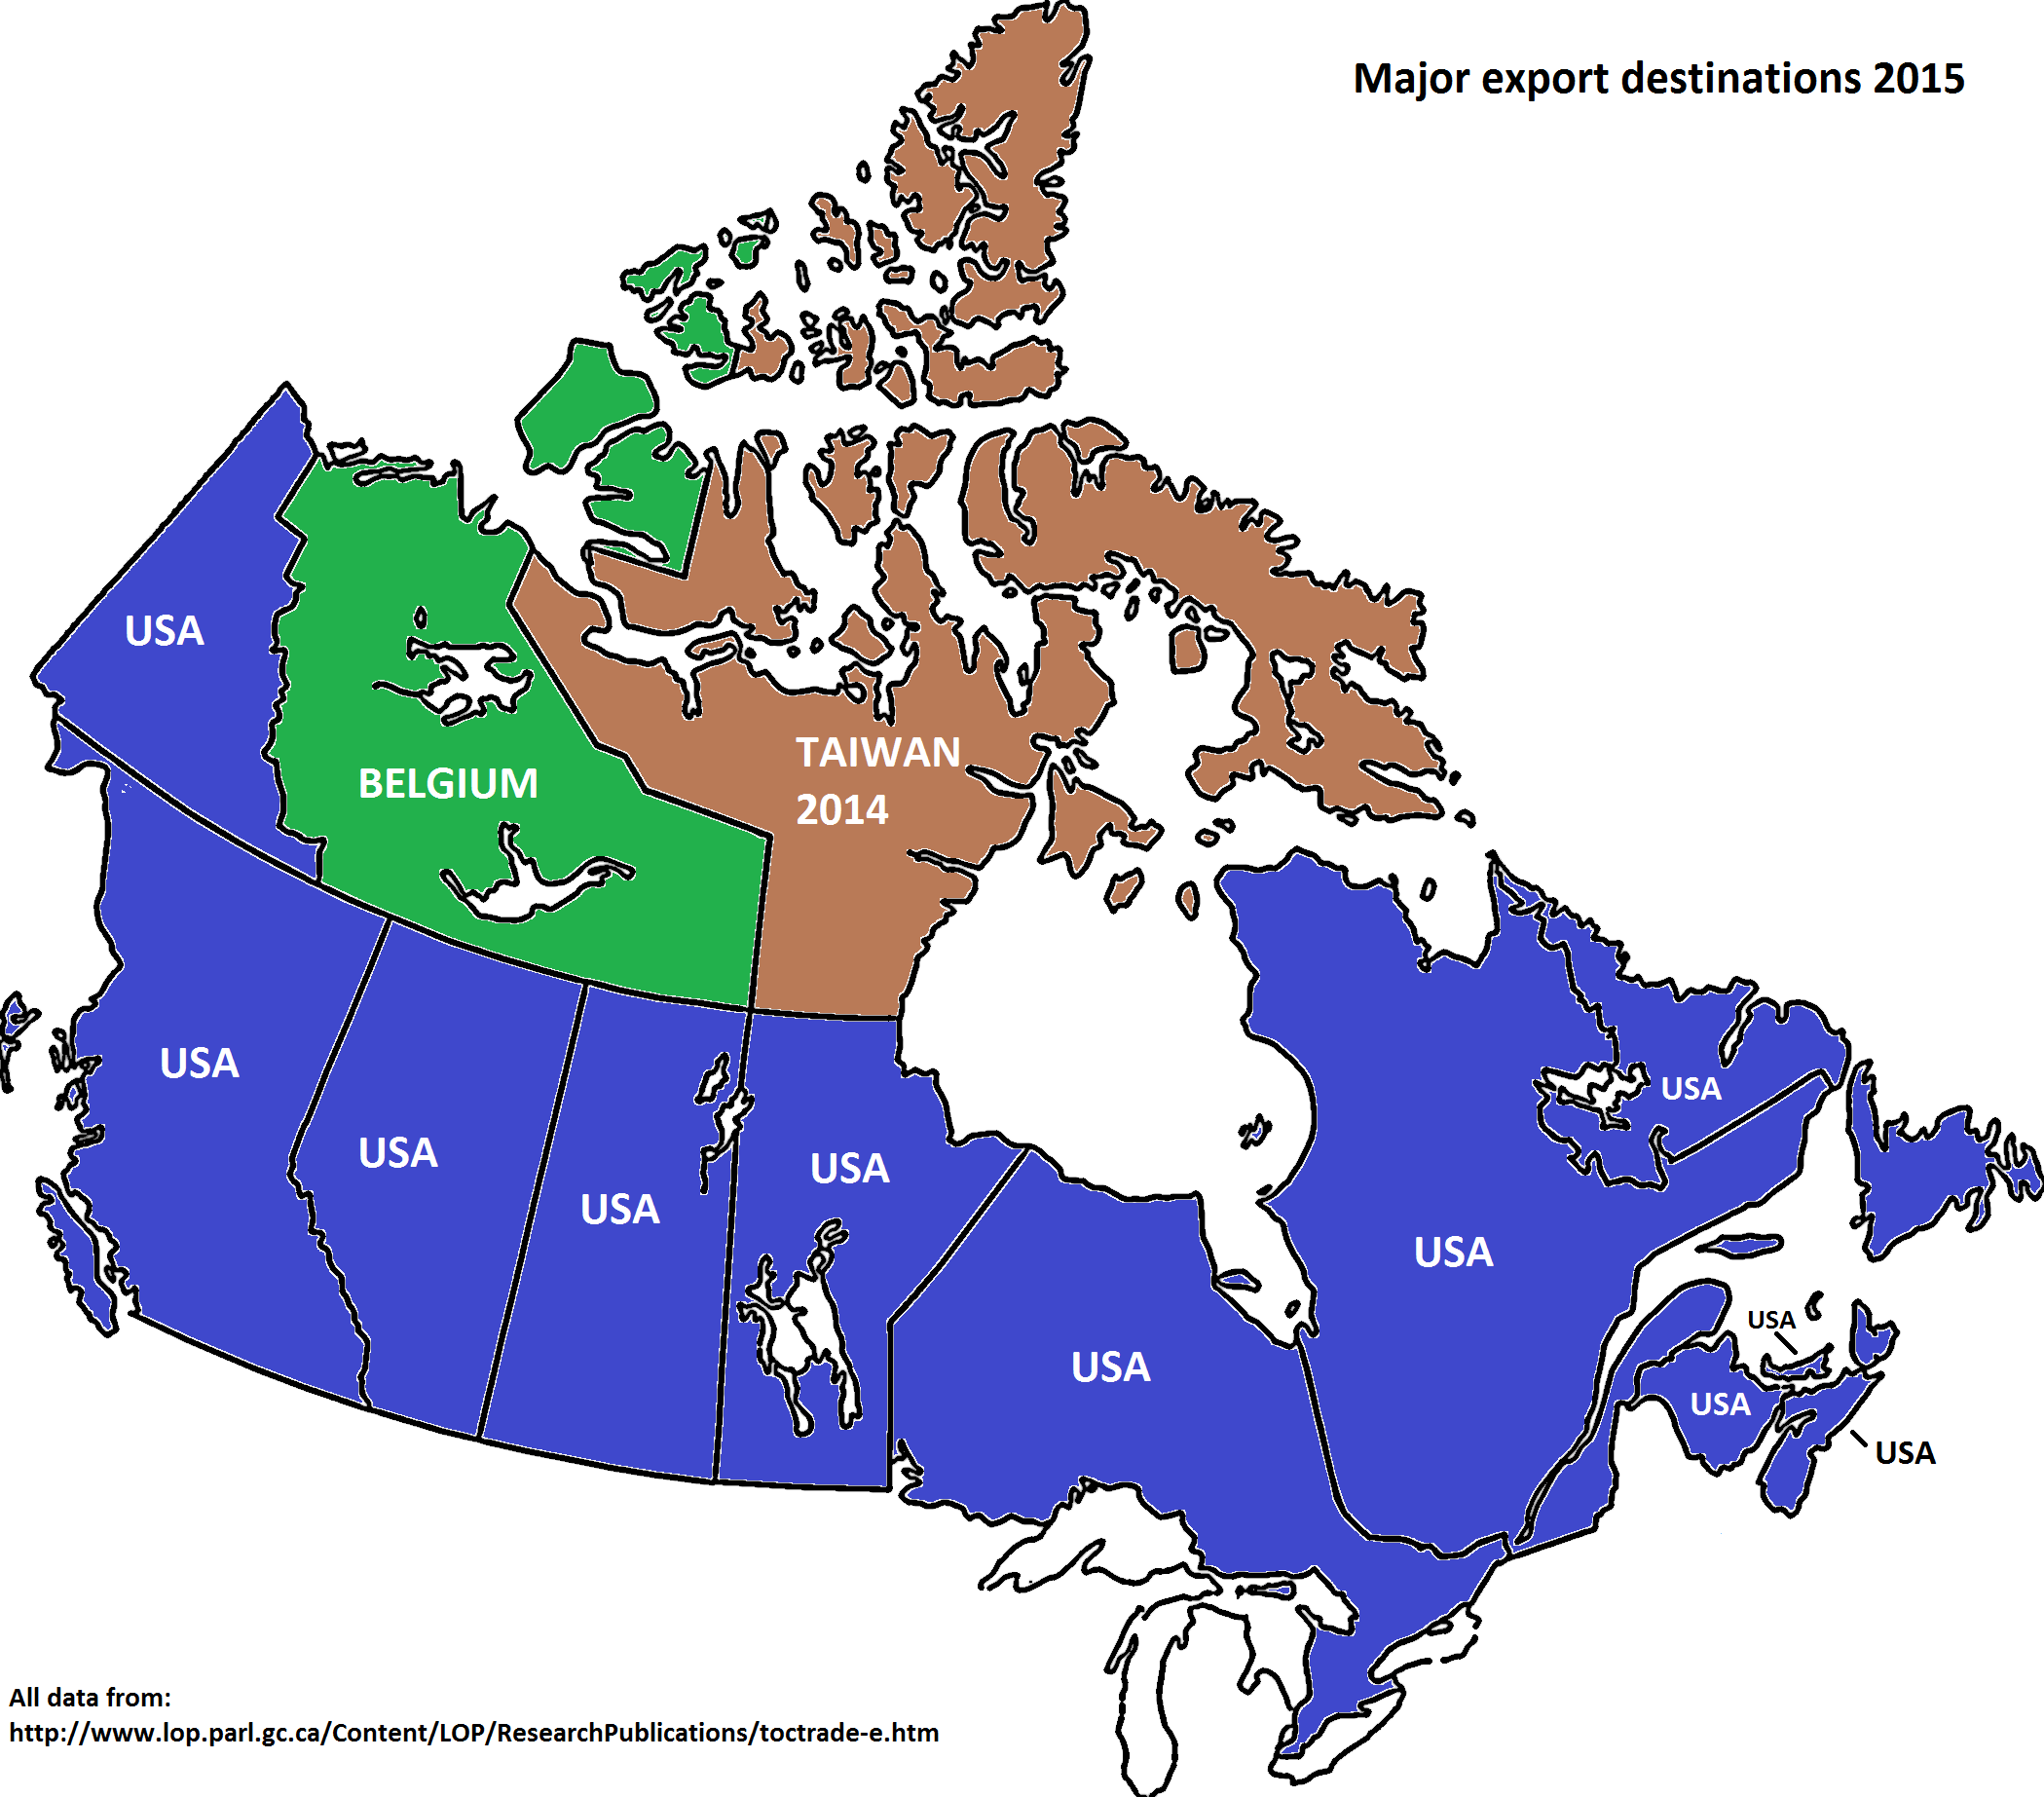 Each Canadian province/territory biggest export